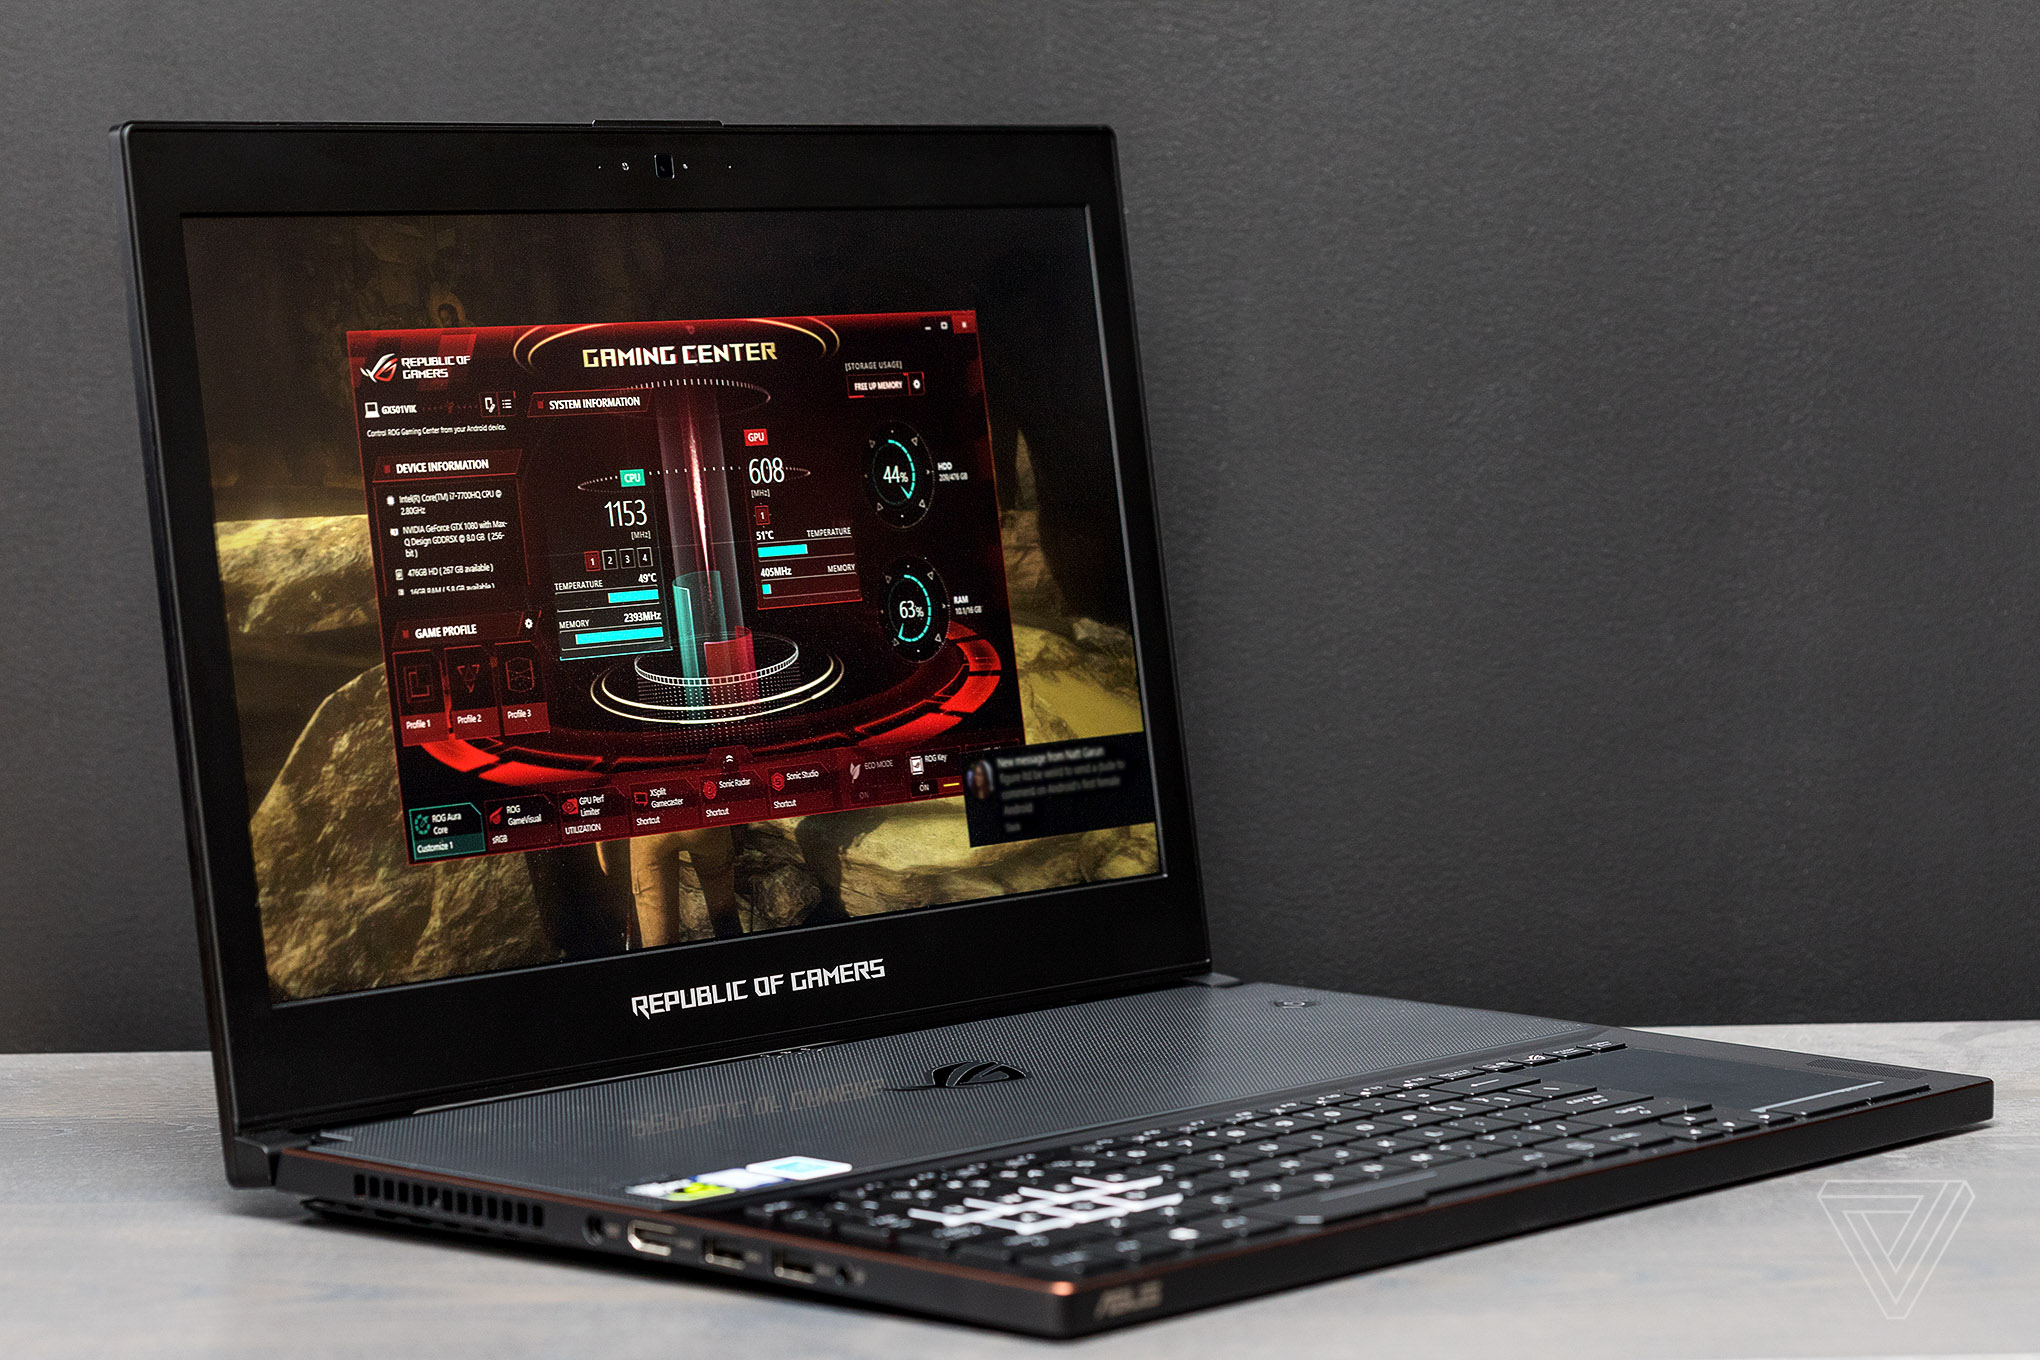 itech-dude-contents-akrales_170818_1922_0042 Asus ROG Zephyrus review: great at gaming, but not much else | iTech Dude - The Technology Blog